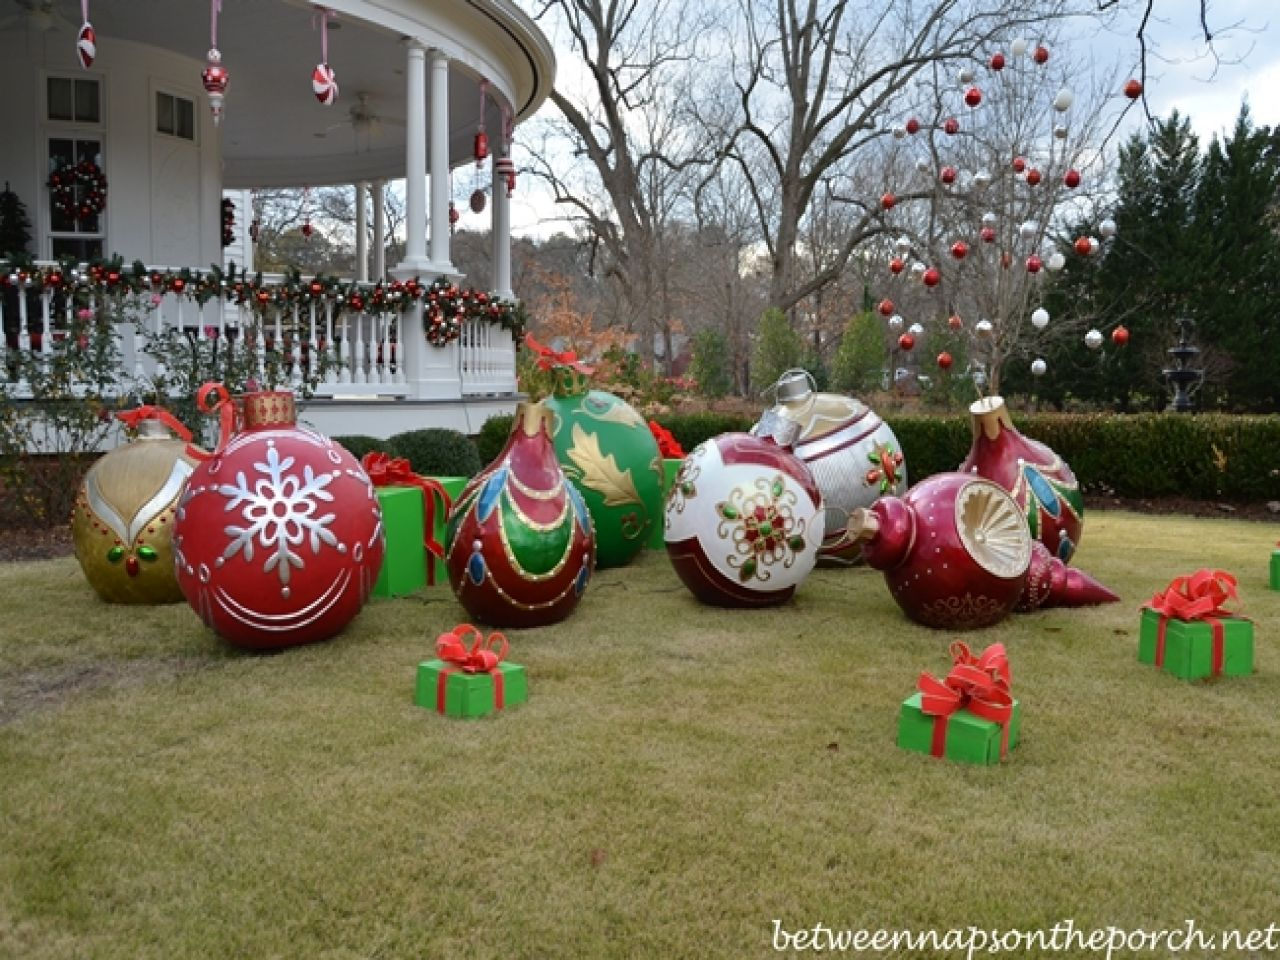 Decorating Your Lawn For Christmas Without Going Overboard